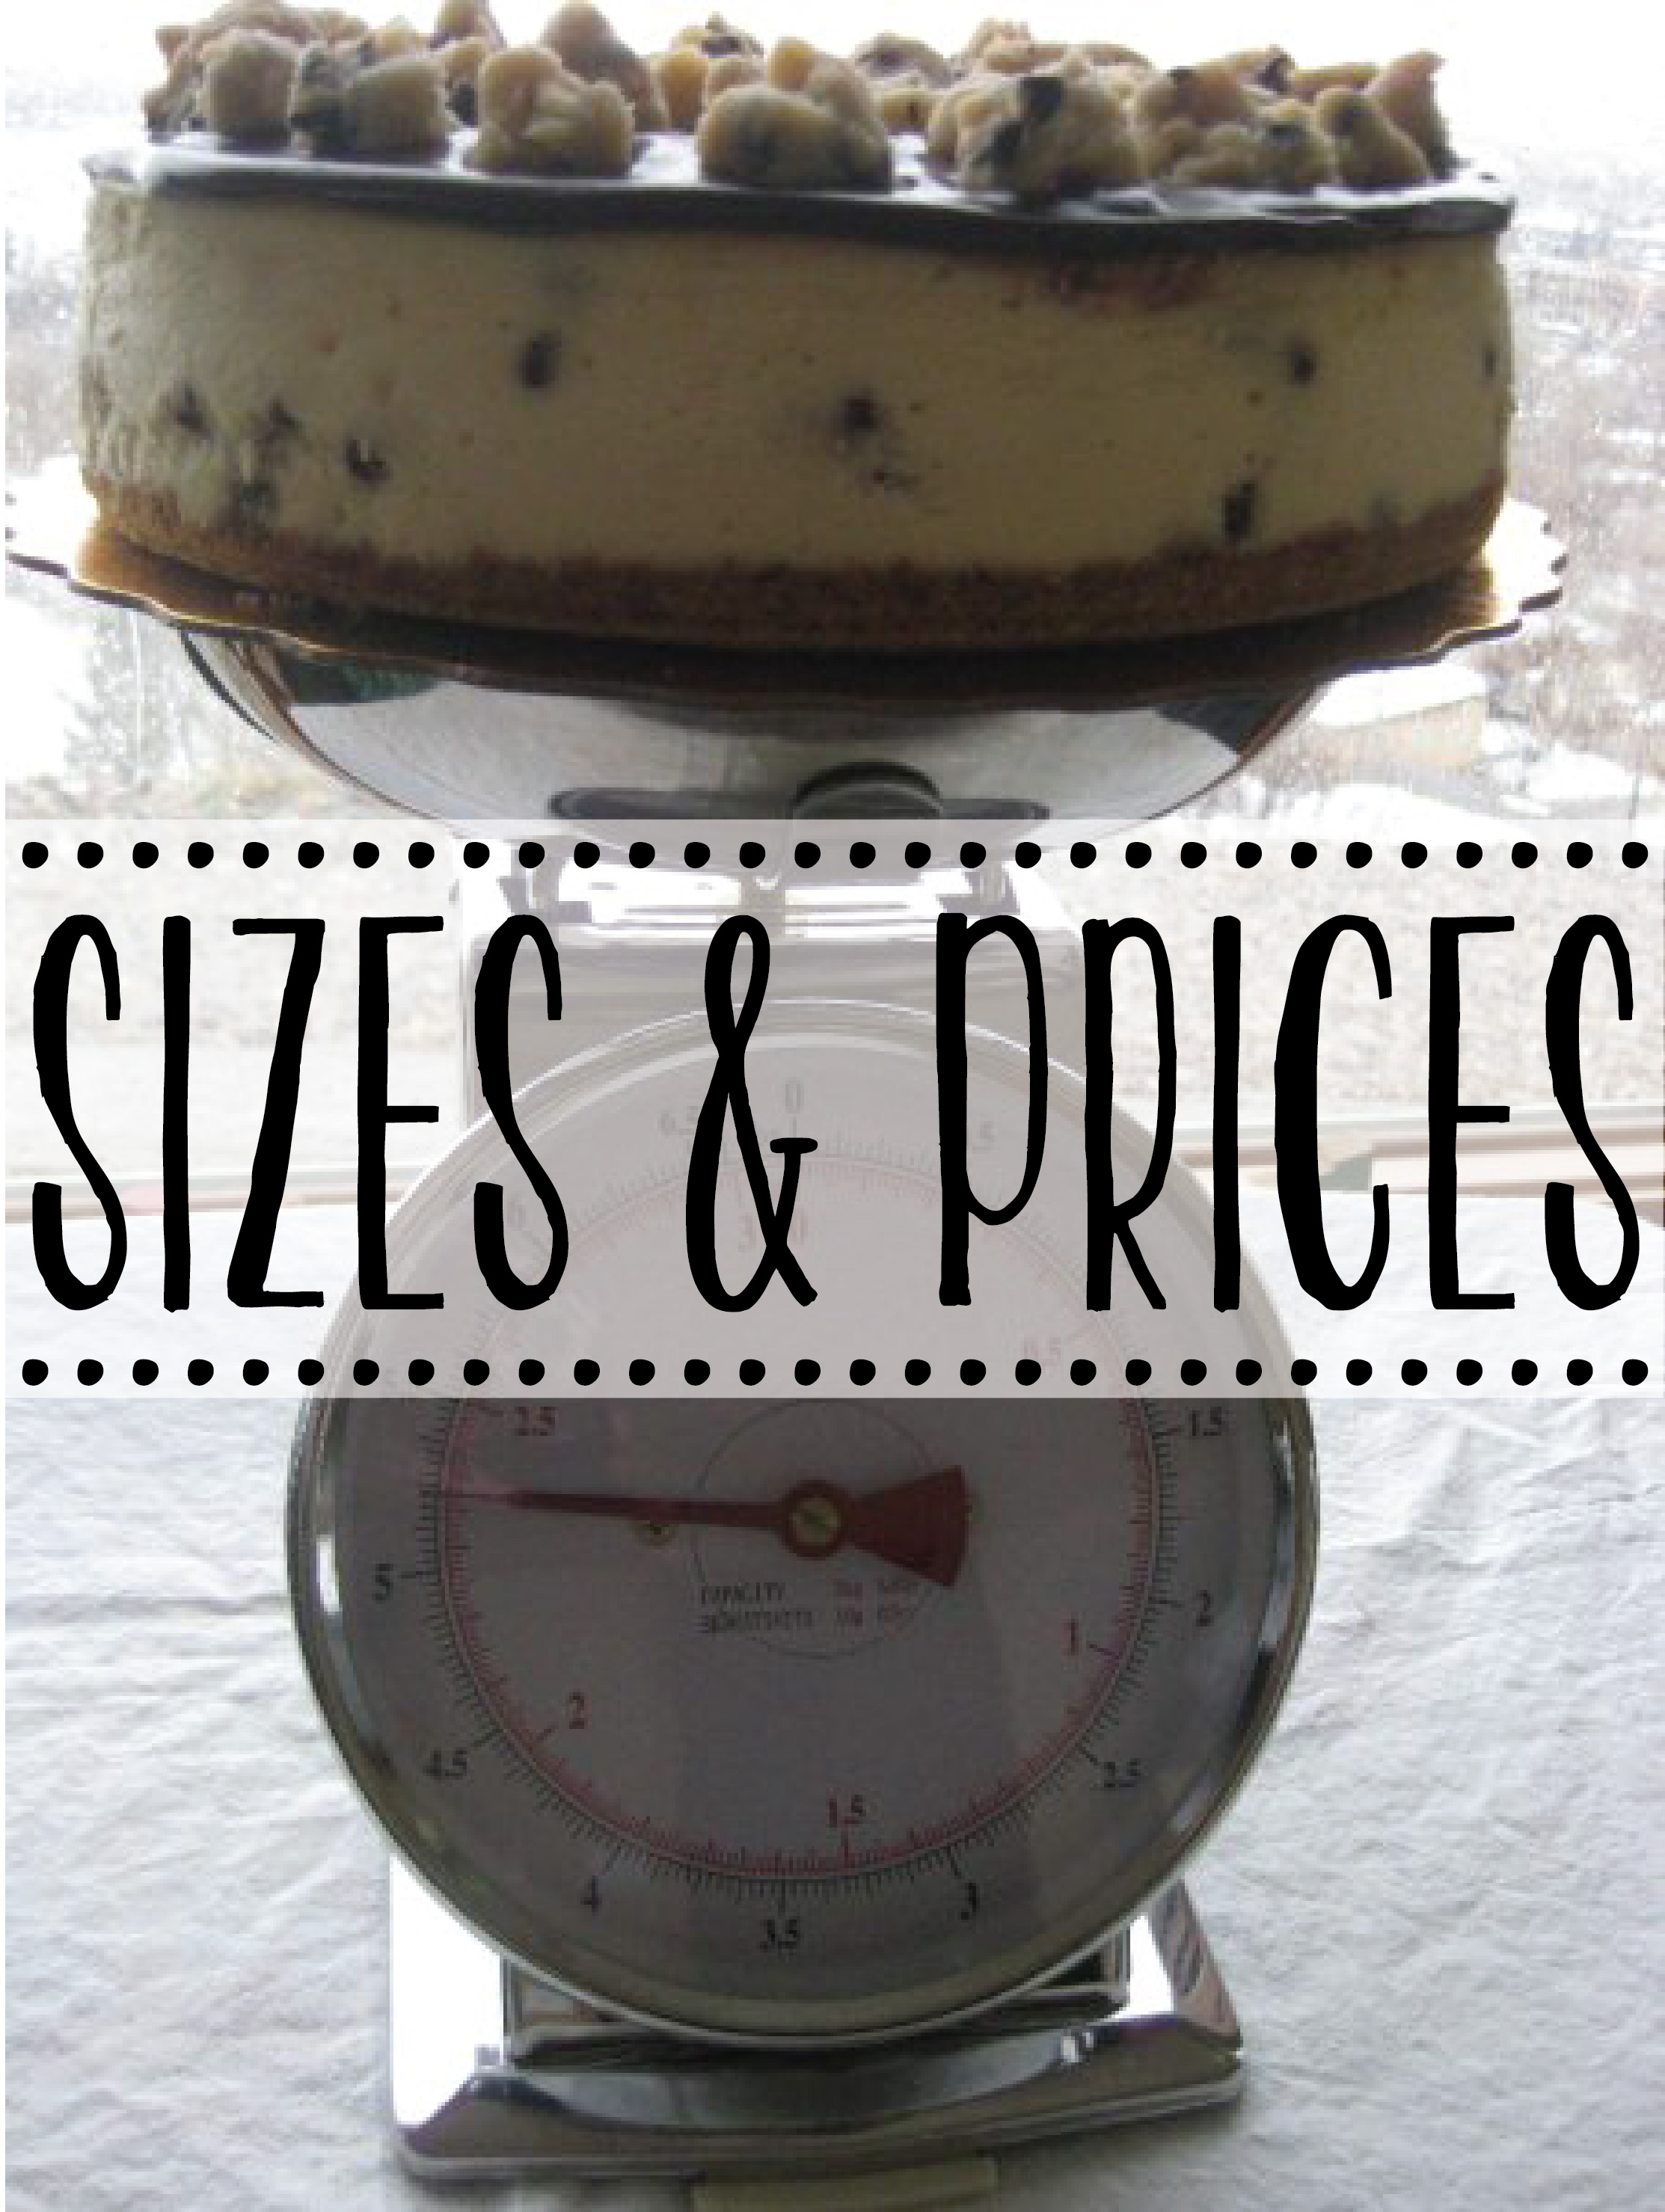 cheesecake sizes & prices.jpg